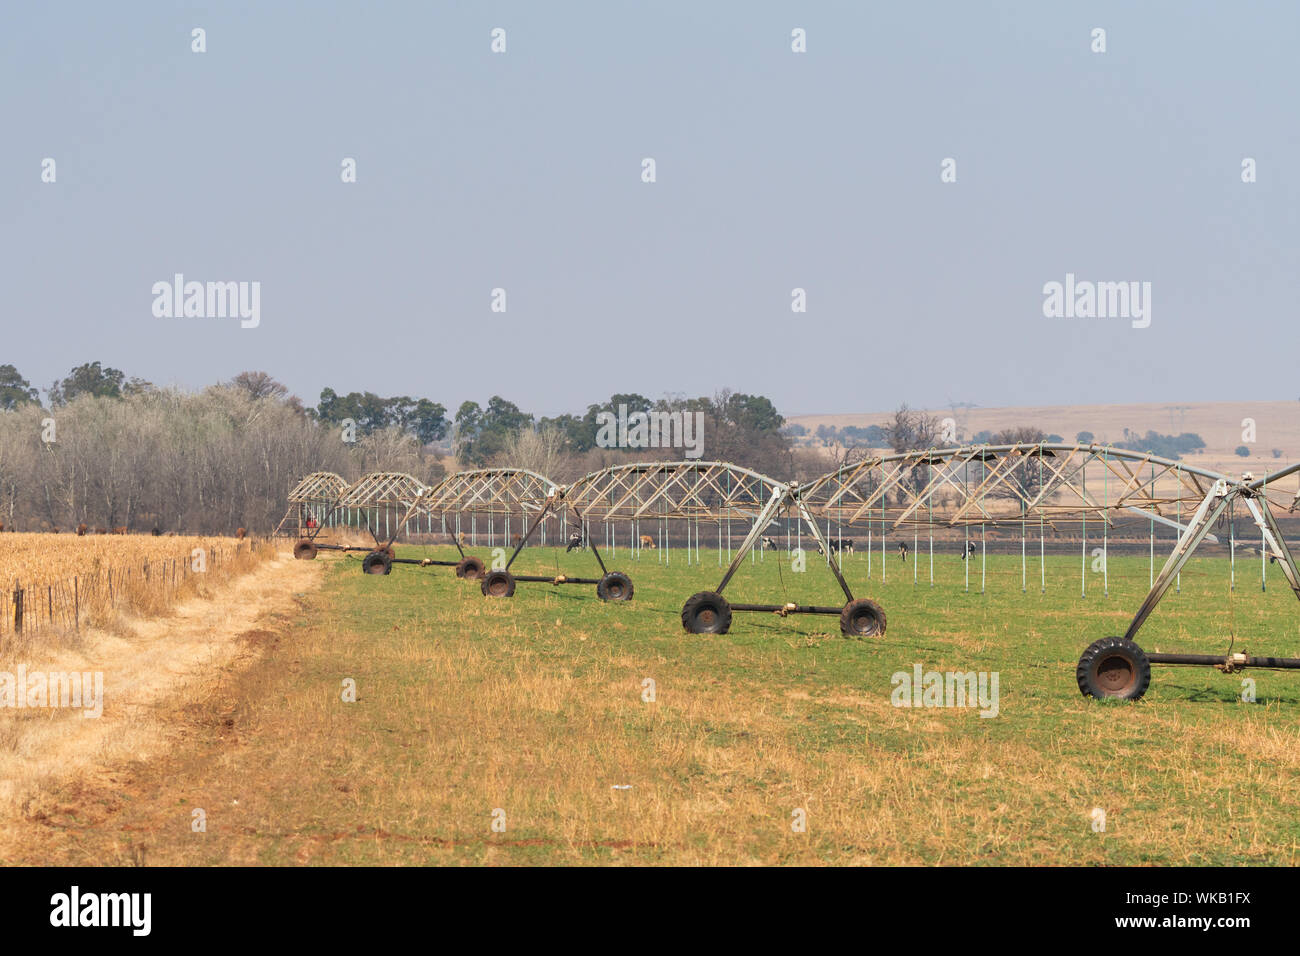 agricultural centre pivot irrigation system in a farm field not being used or not functioning in Gauteng, South Africa Stock Photo